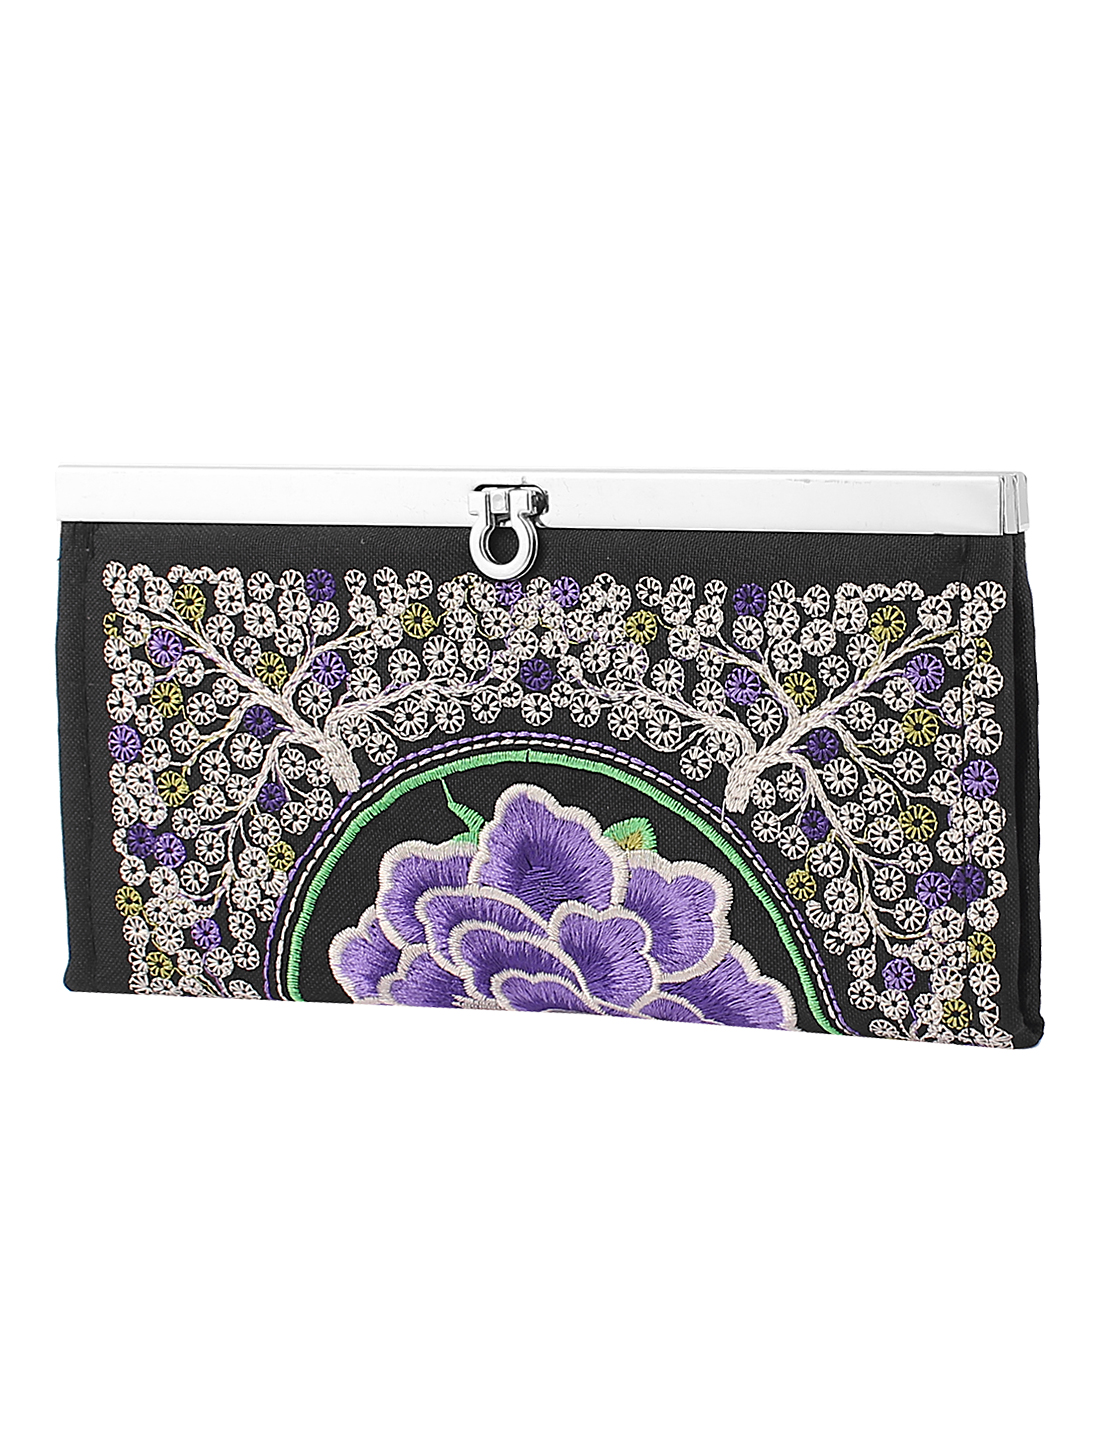 Embroidered Flower Purse Clutch Phone Coin Wallet Makeup Bag Handbag